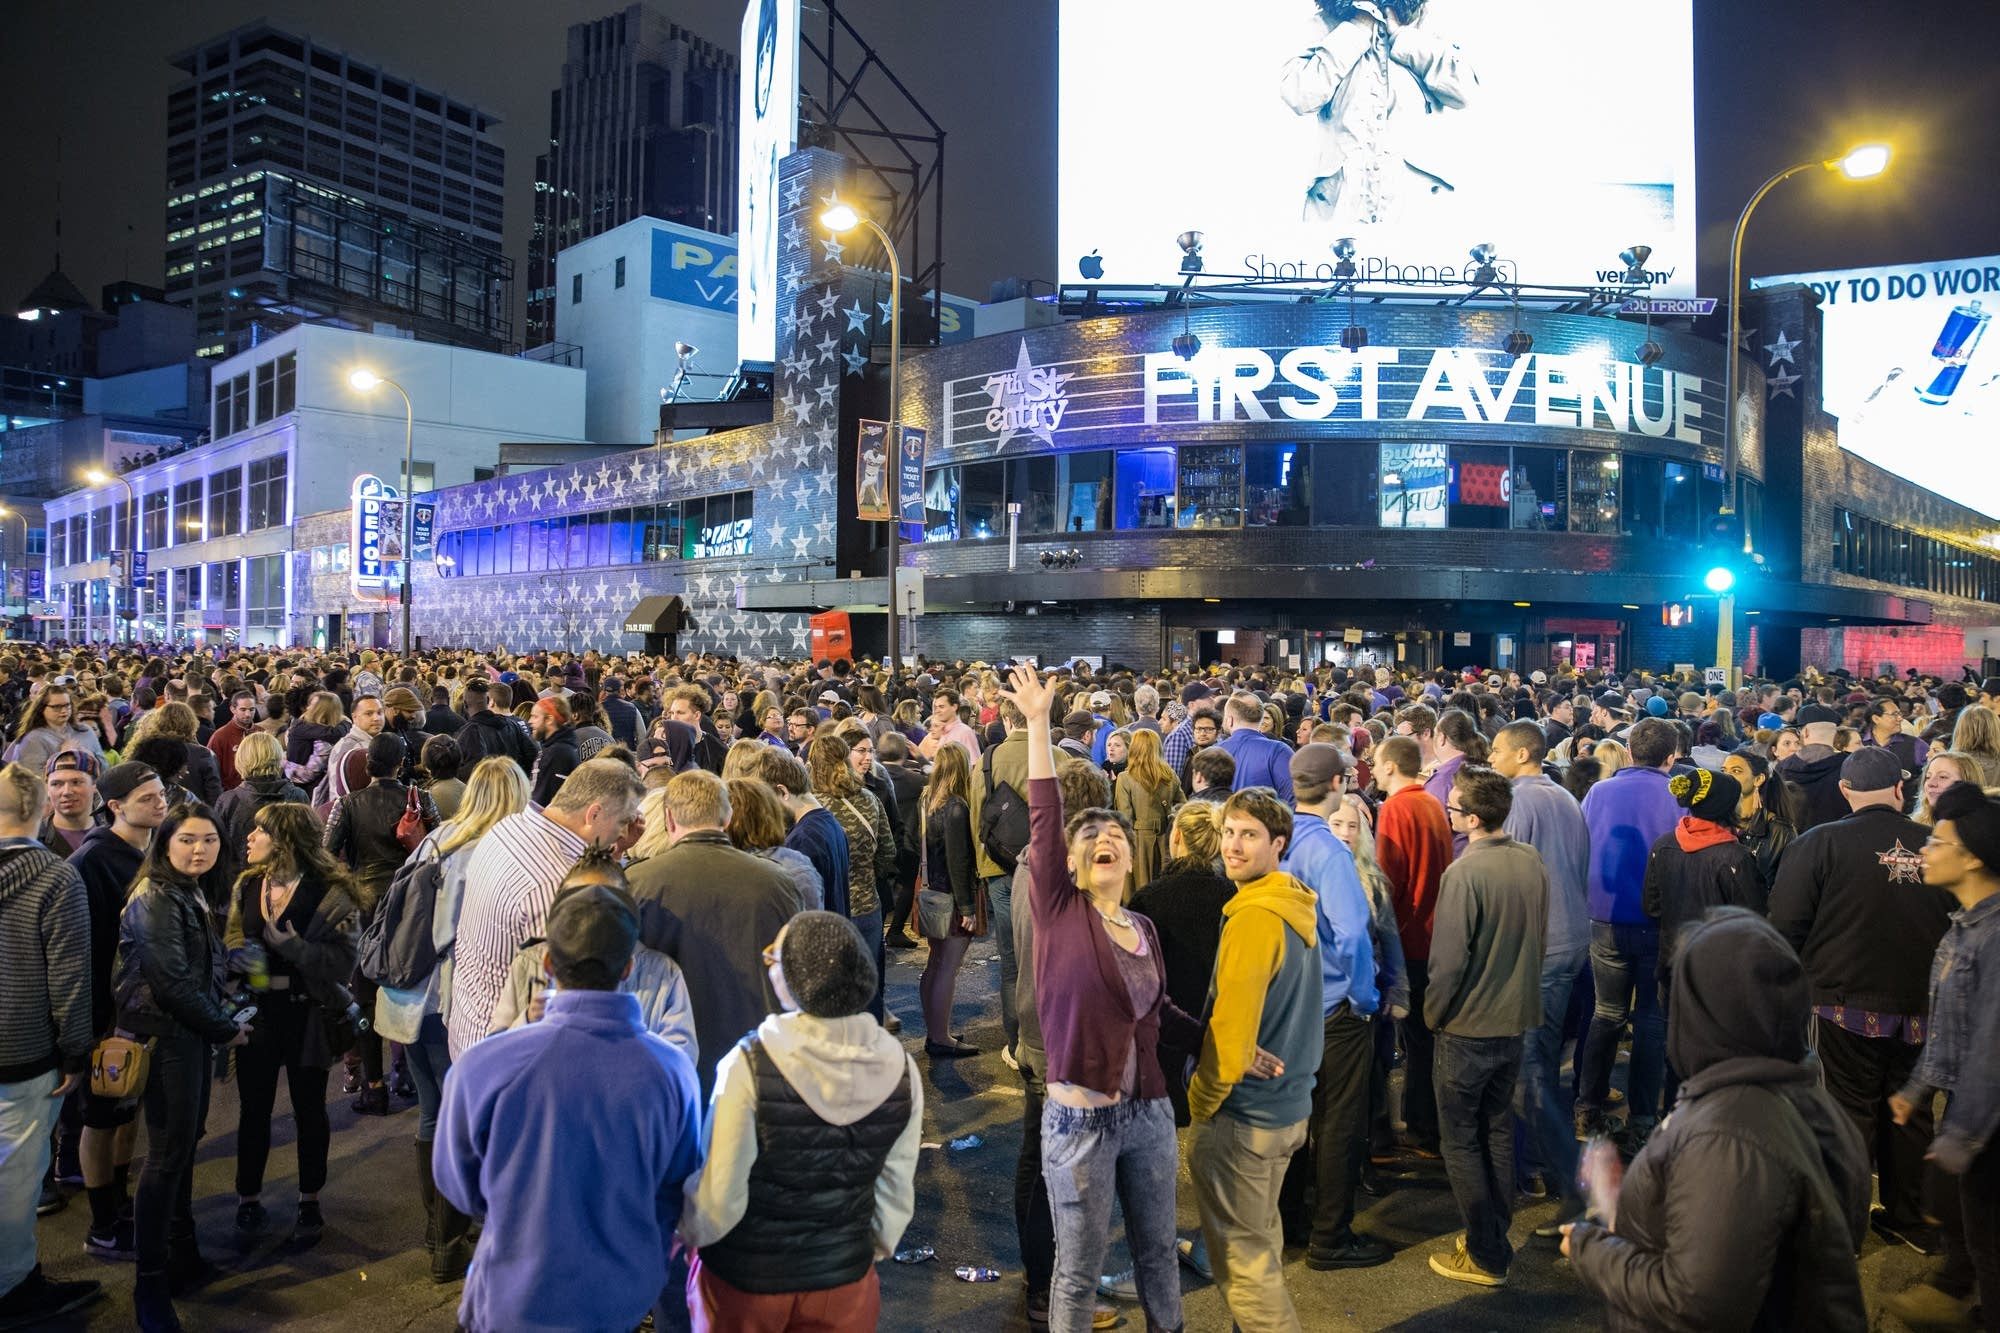 Crowds outside of First Ave in Minneapolis after Prince's death